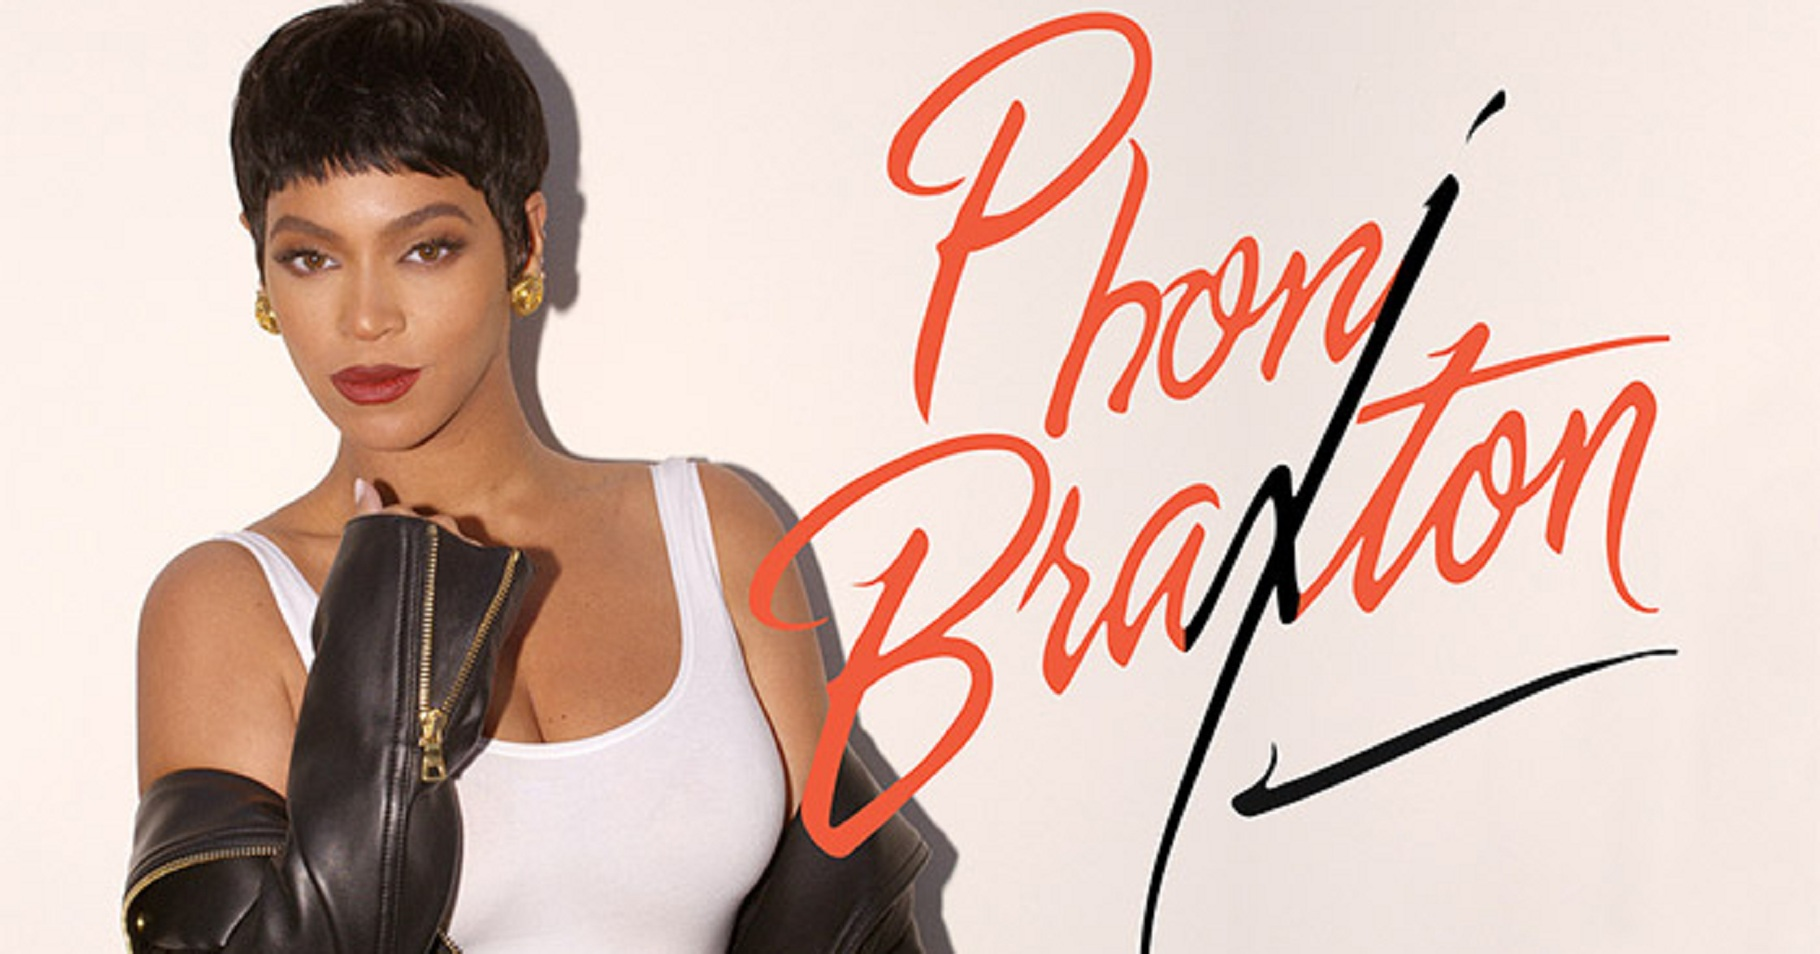 Beyonce Transforms Into Toni Braxton For This Year's Halloween. Pays Homage To The Diva!